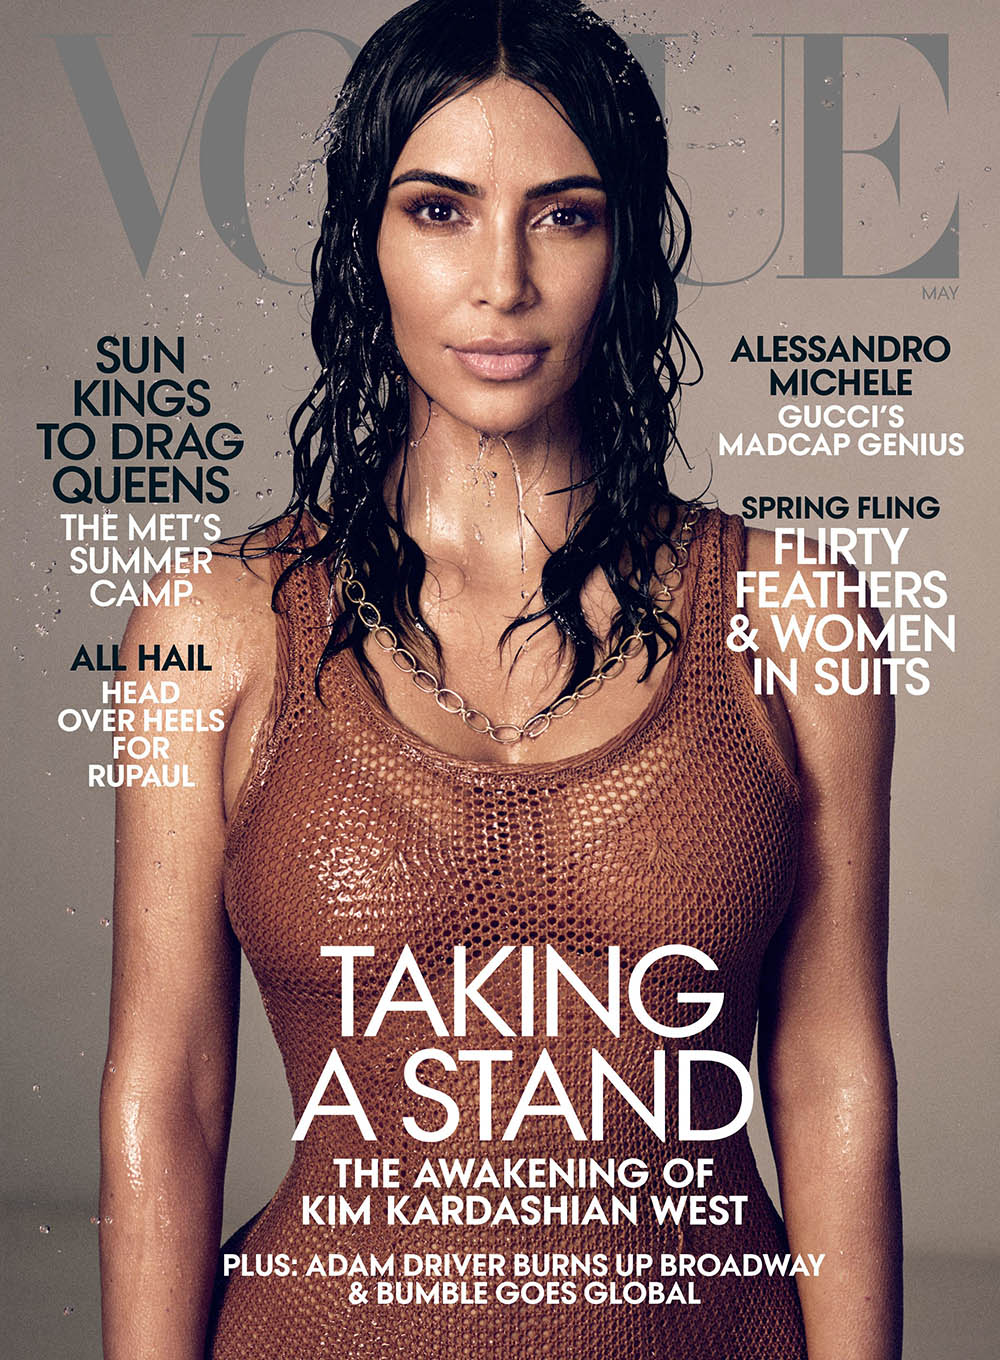 Kim Kardashian West covers Vogue US May 2019 by Mikael Jansson